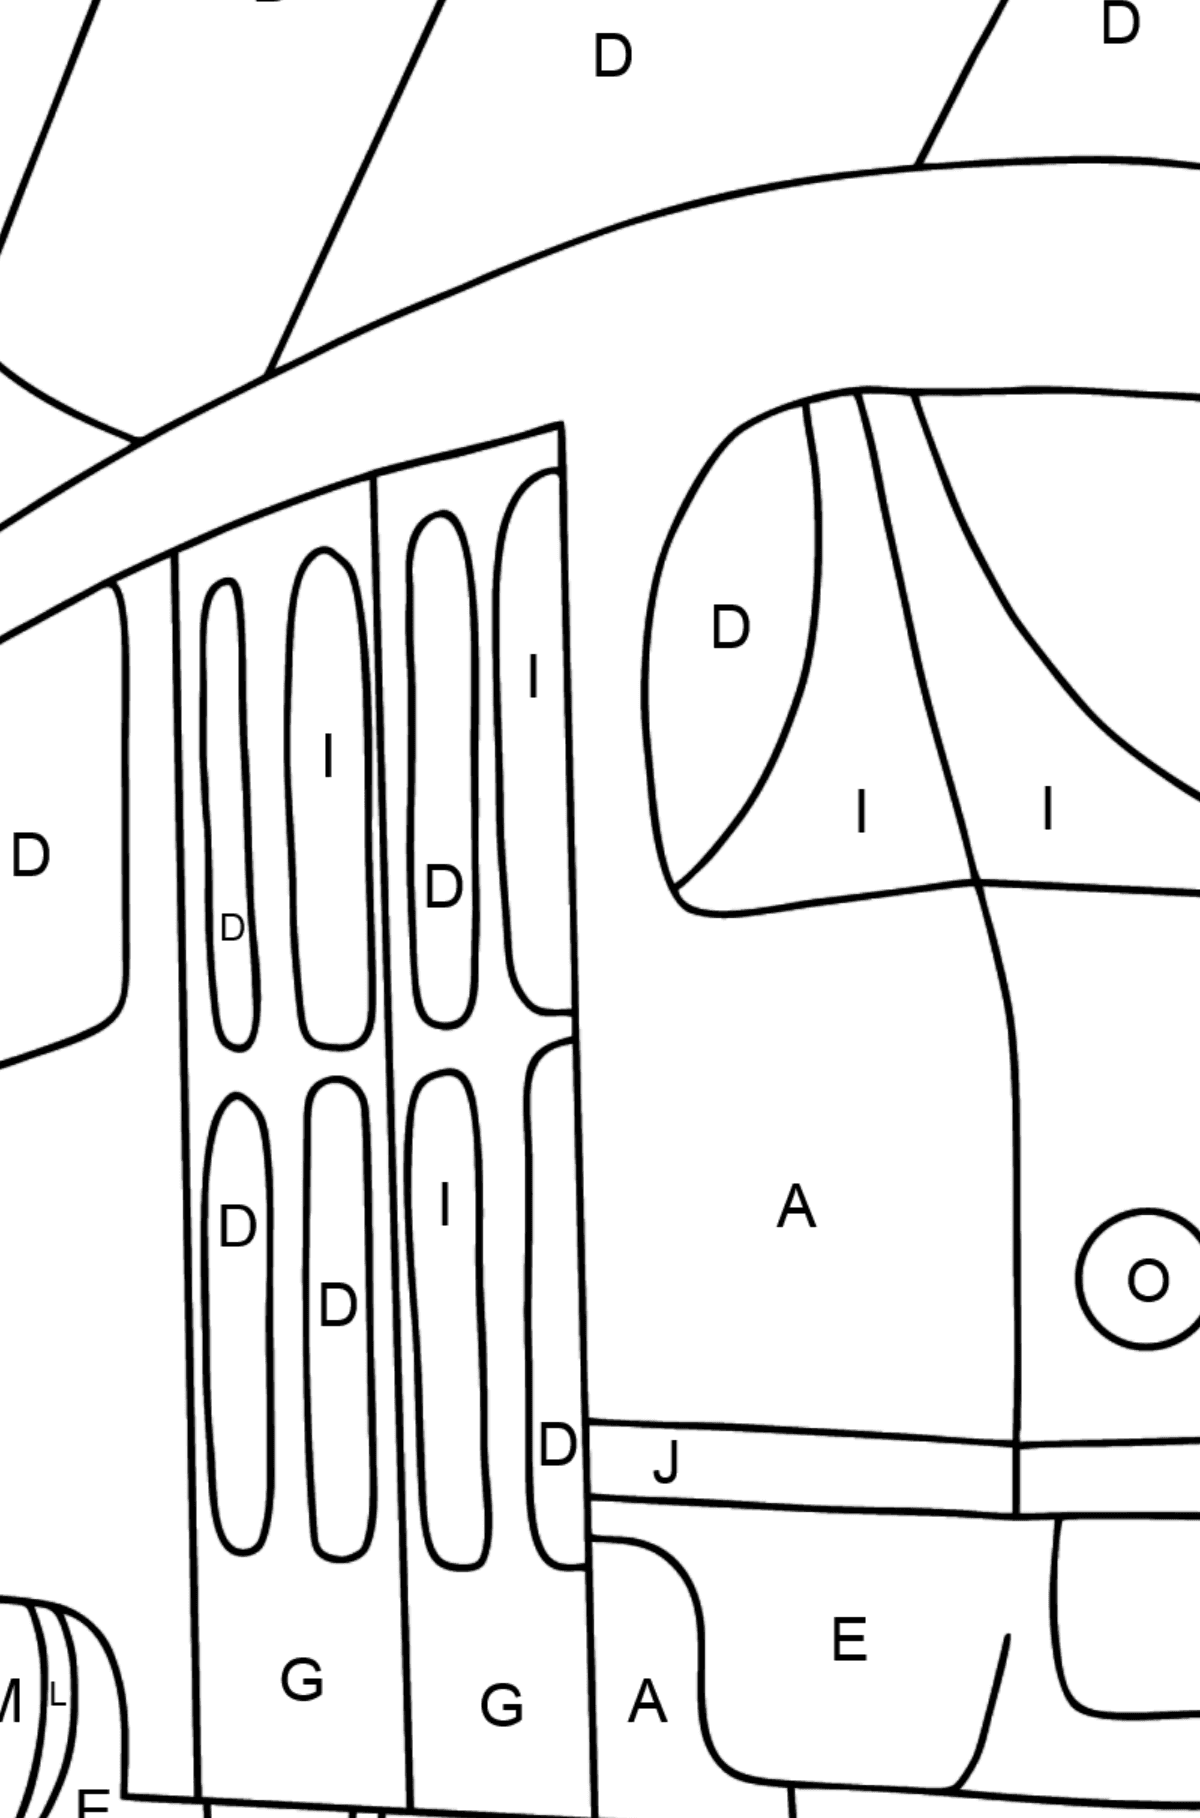 A Tram Coloring Page - Print fo free - Coloring by Letters for Kids